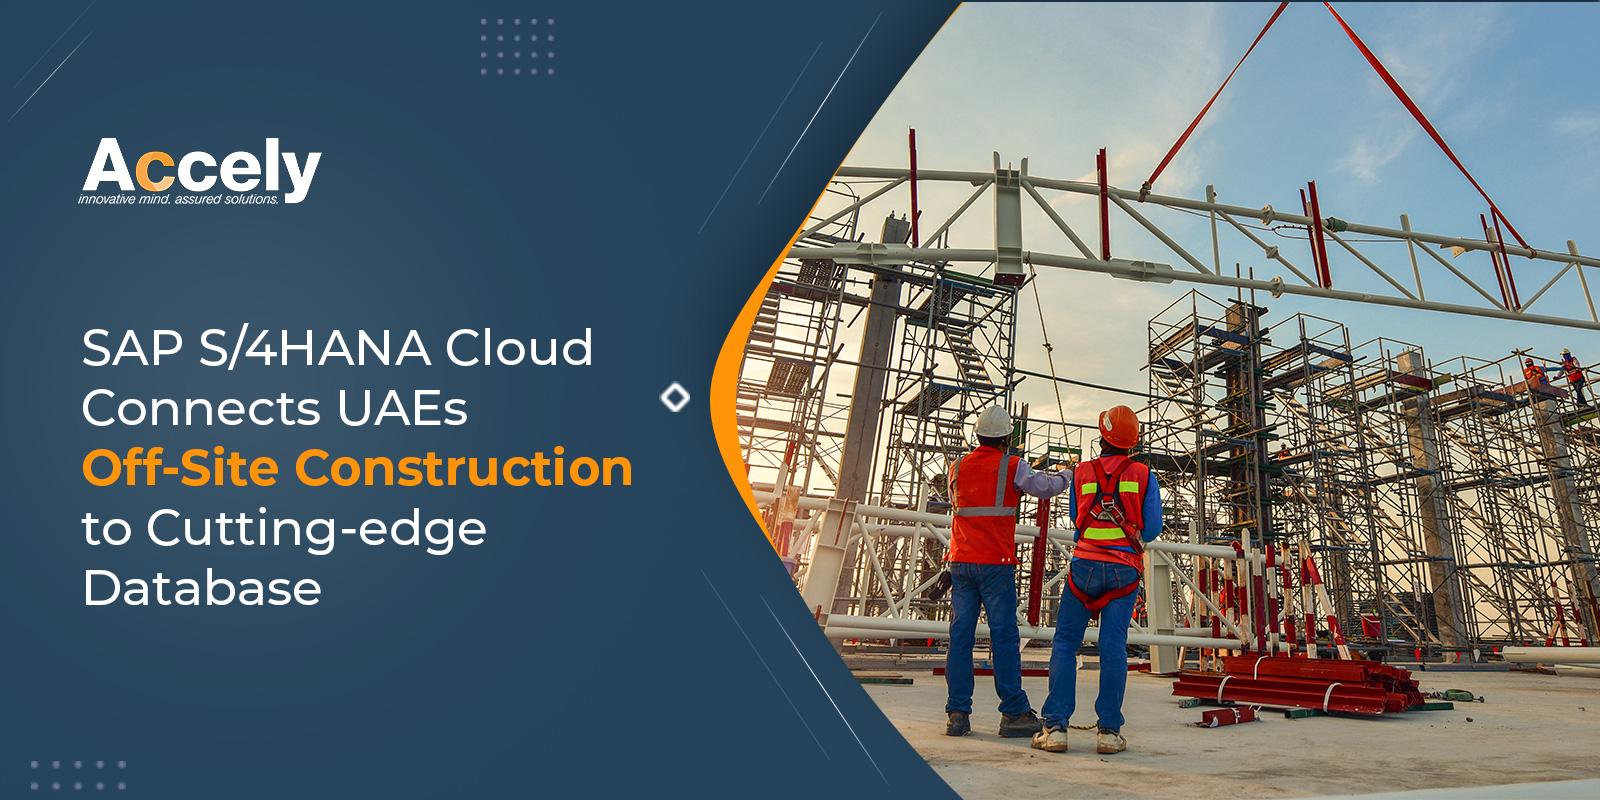 Integration of SAP S/4 HANA Cloud Connects a Major Off-Site Construction Technology from UAE to Cutting-edge Database for Strategical Leverage